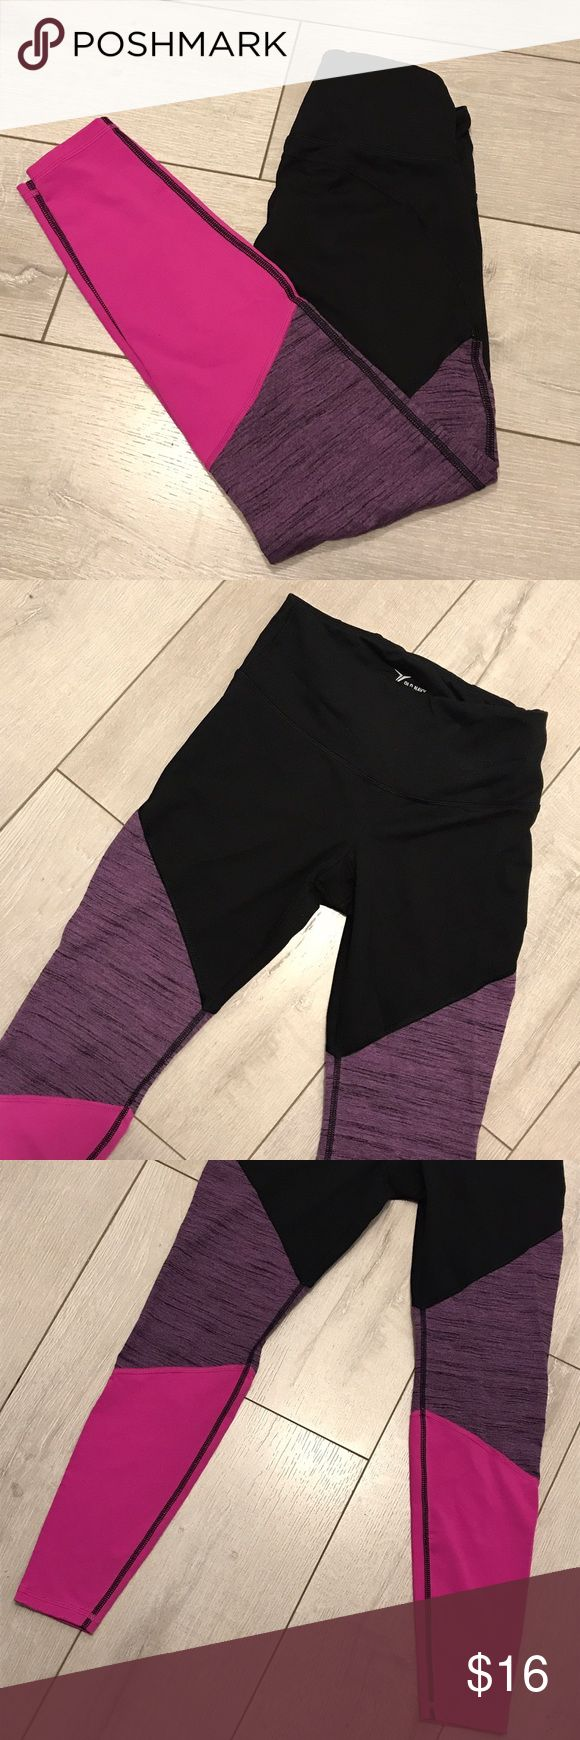 Old Navy leggings Old Navy Go-Dry high-rise color-block leggings in black, purple, and pink. Size Medium Petite. Only worn twice - like new! Body is 85% polyester and 15% spandex. Would make a super cute addition to your workout wardrobe! Old Navy Pants Leggings